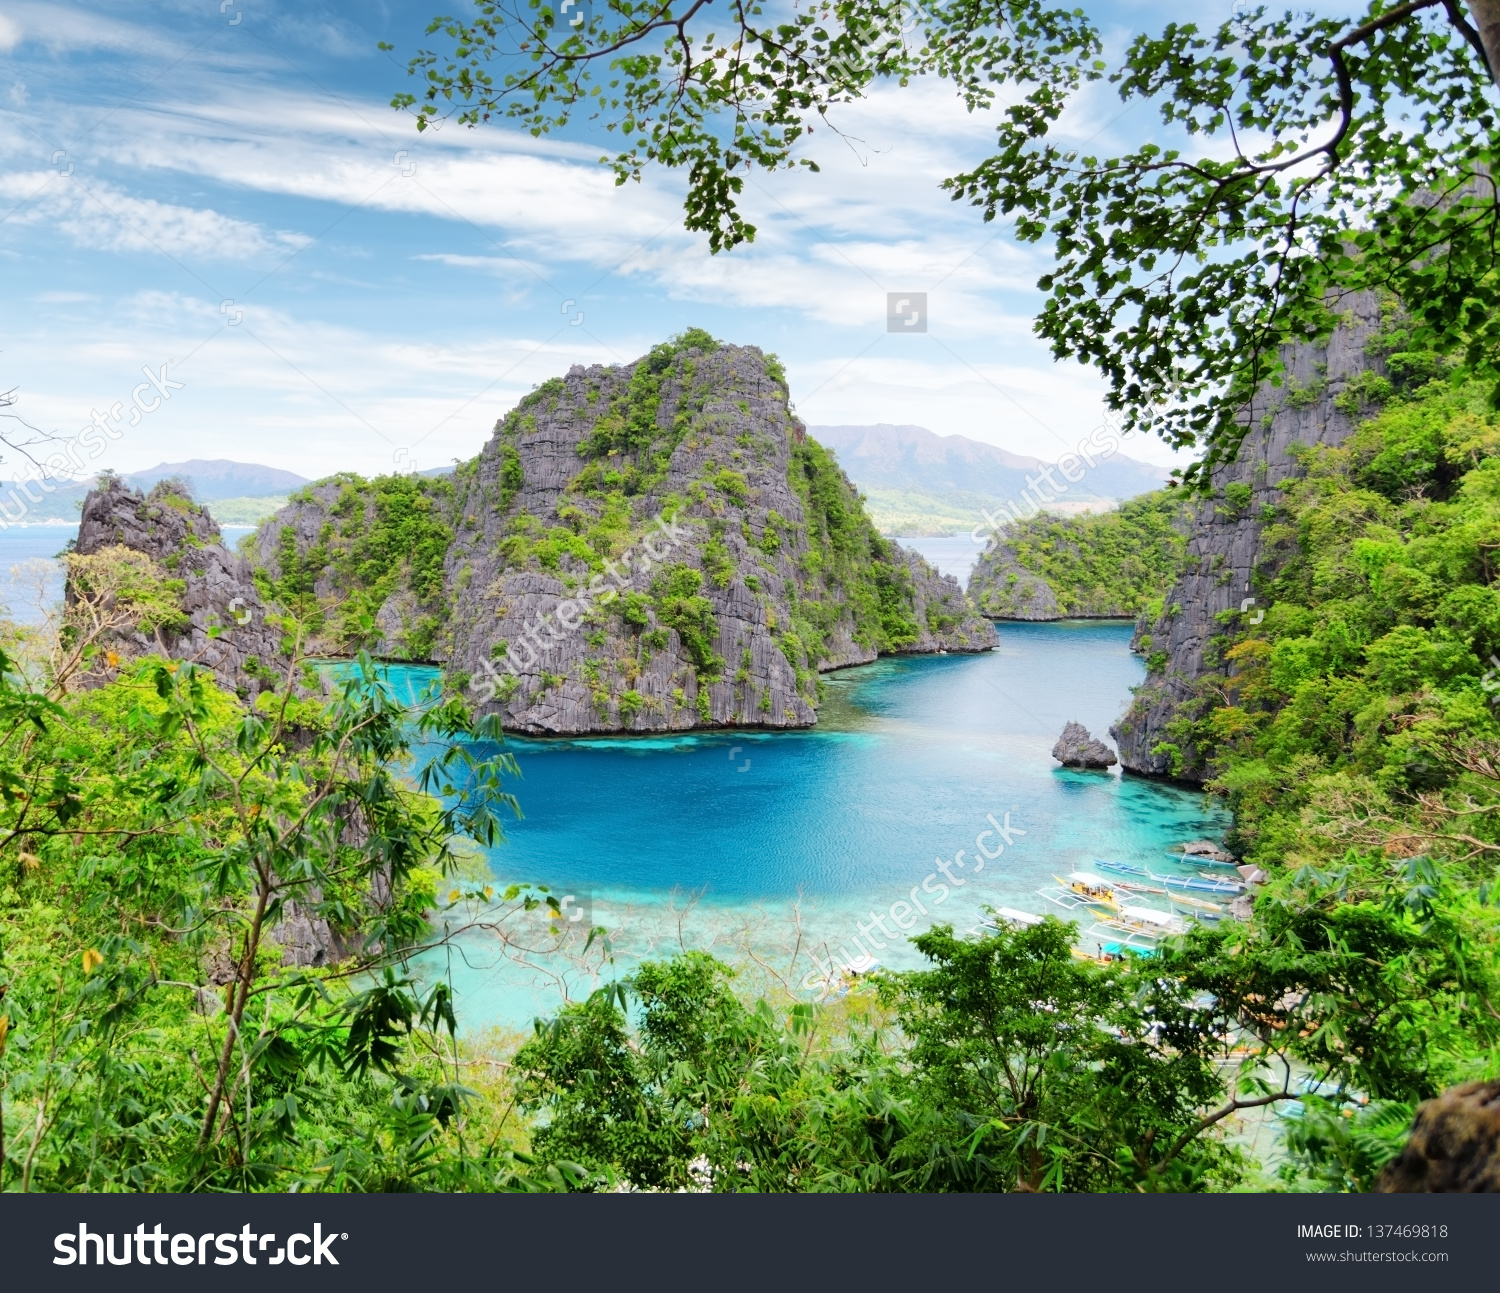 Coron Island clipart #7, Download drawings